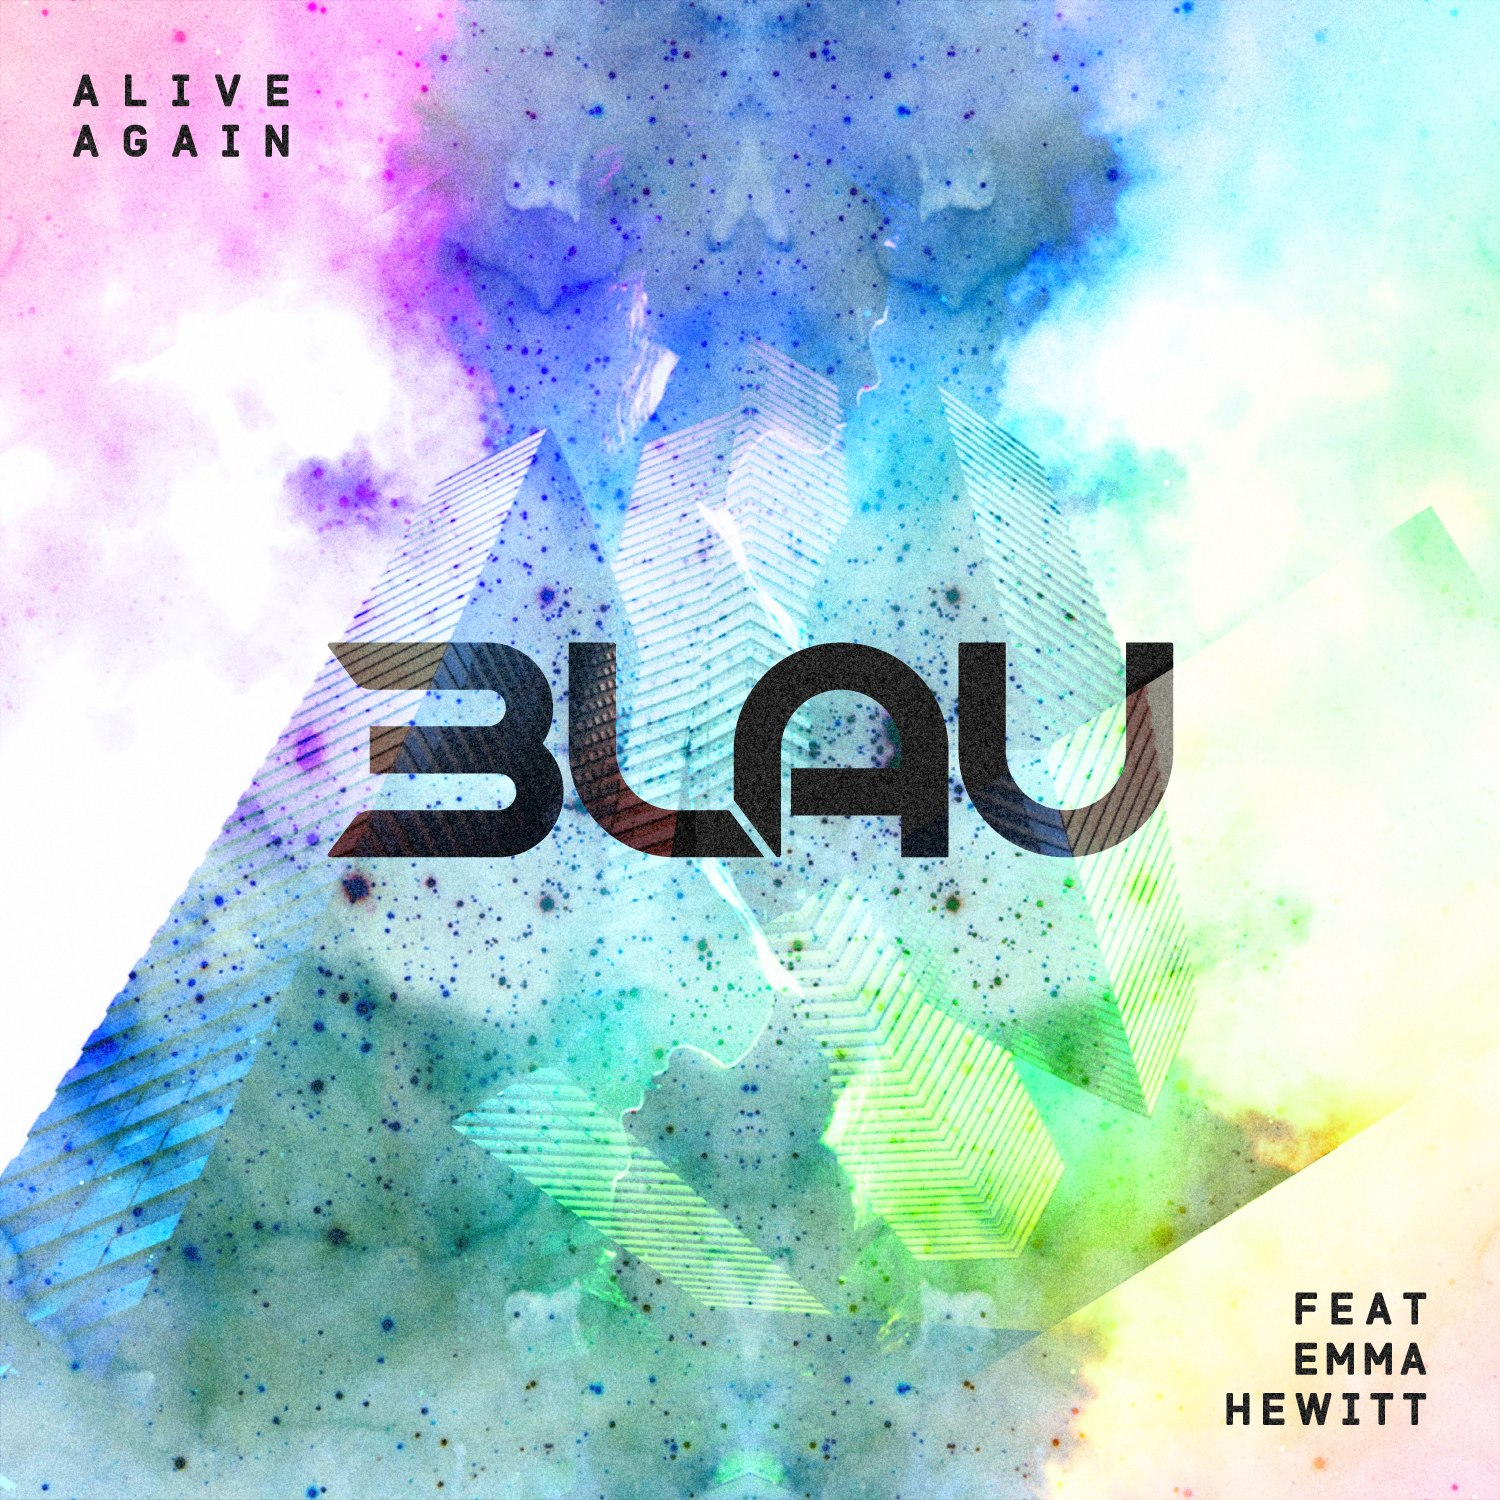 """Your EDM Exclusive – 3LAU """"Alive Again"""" EP Featuring Emma Hewitt"""